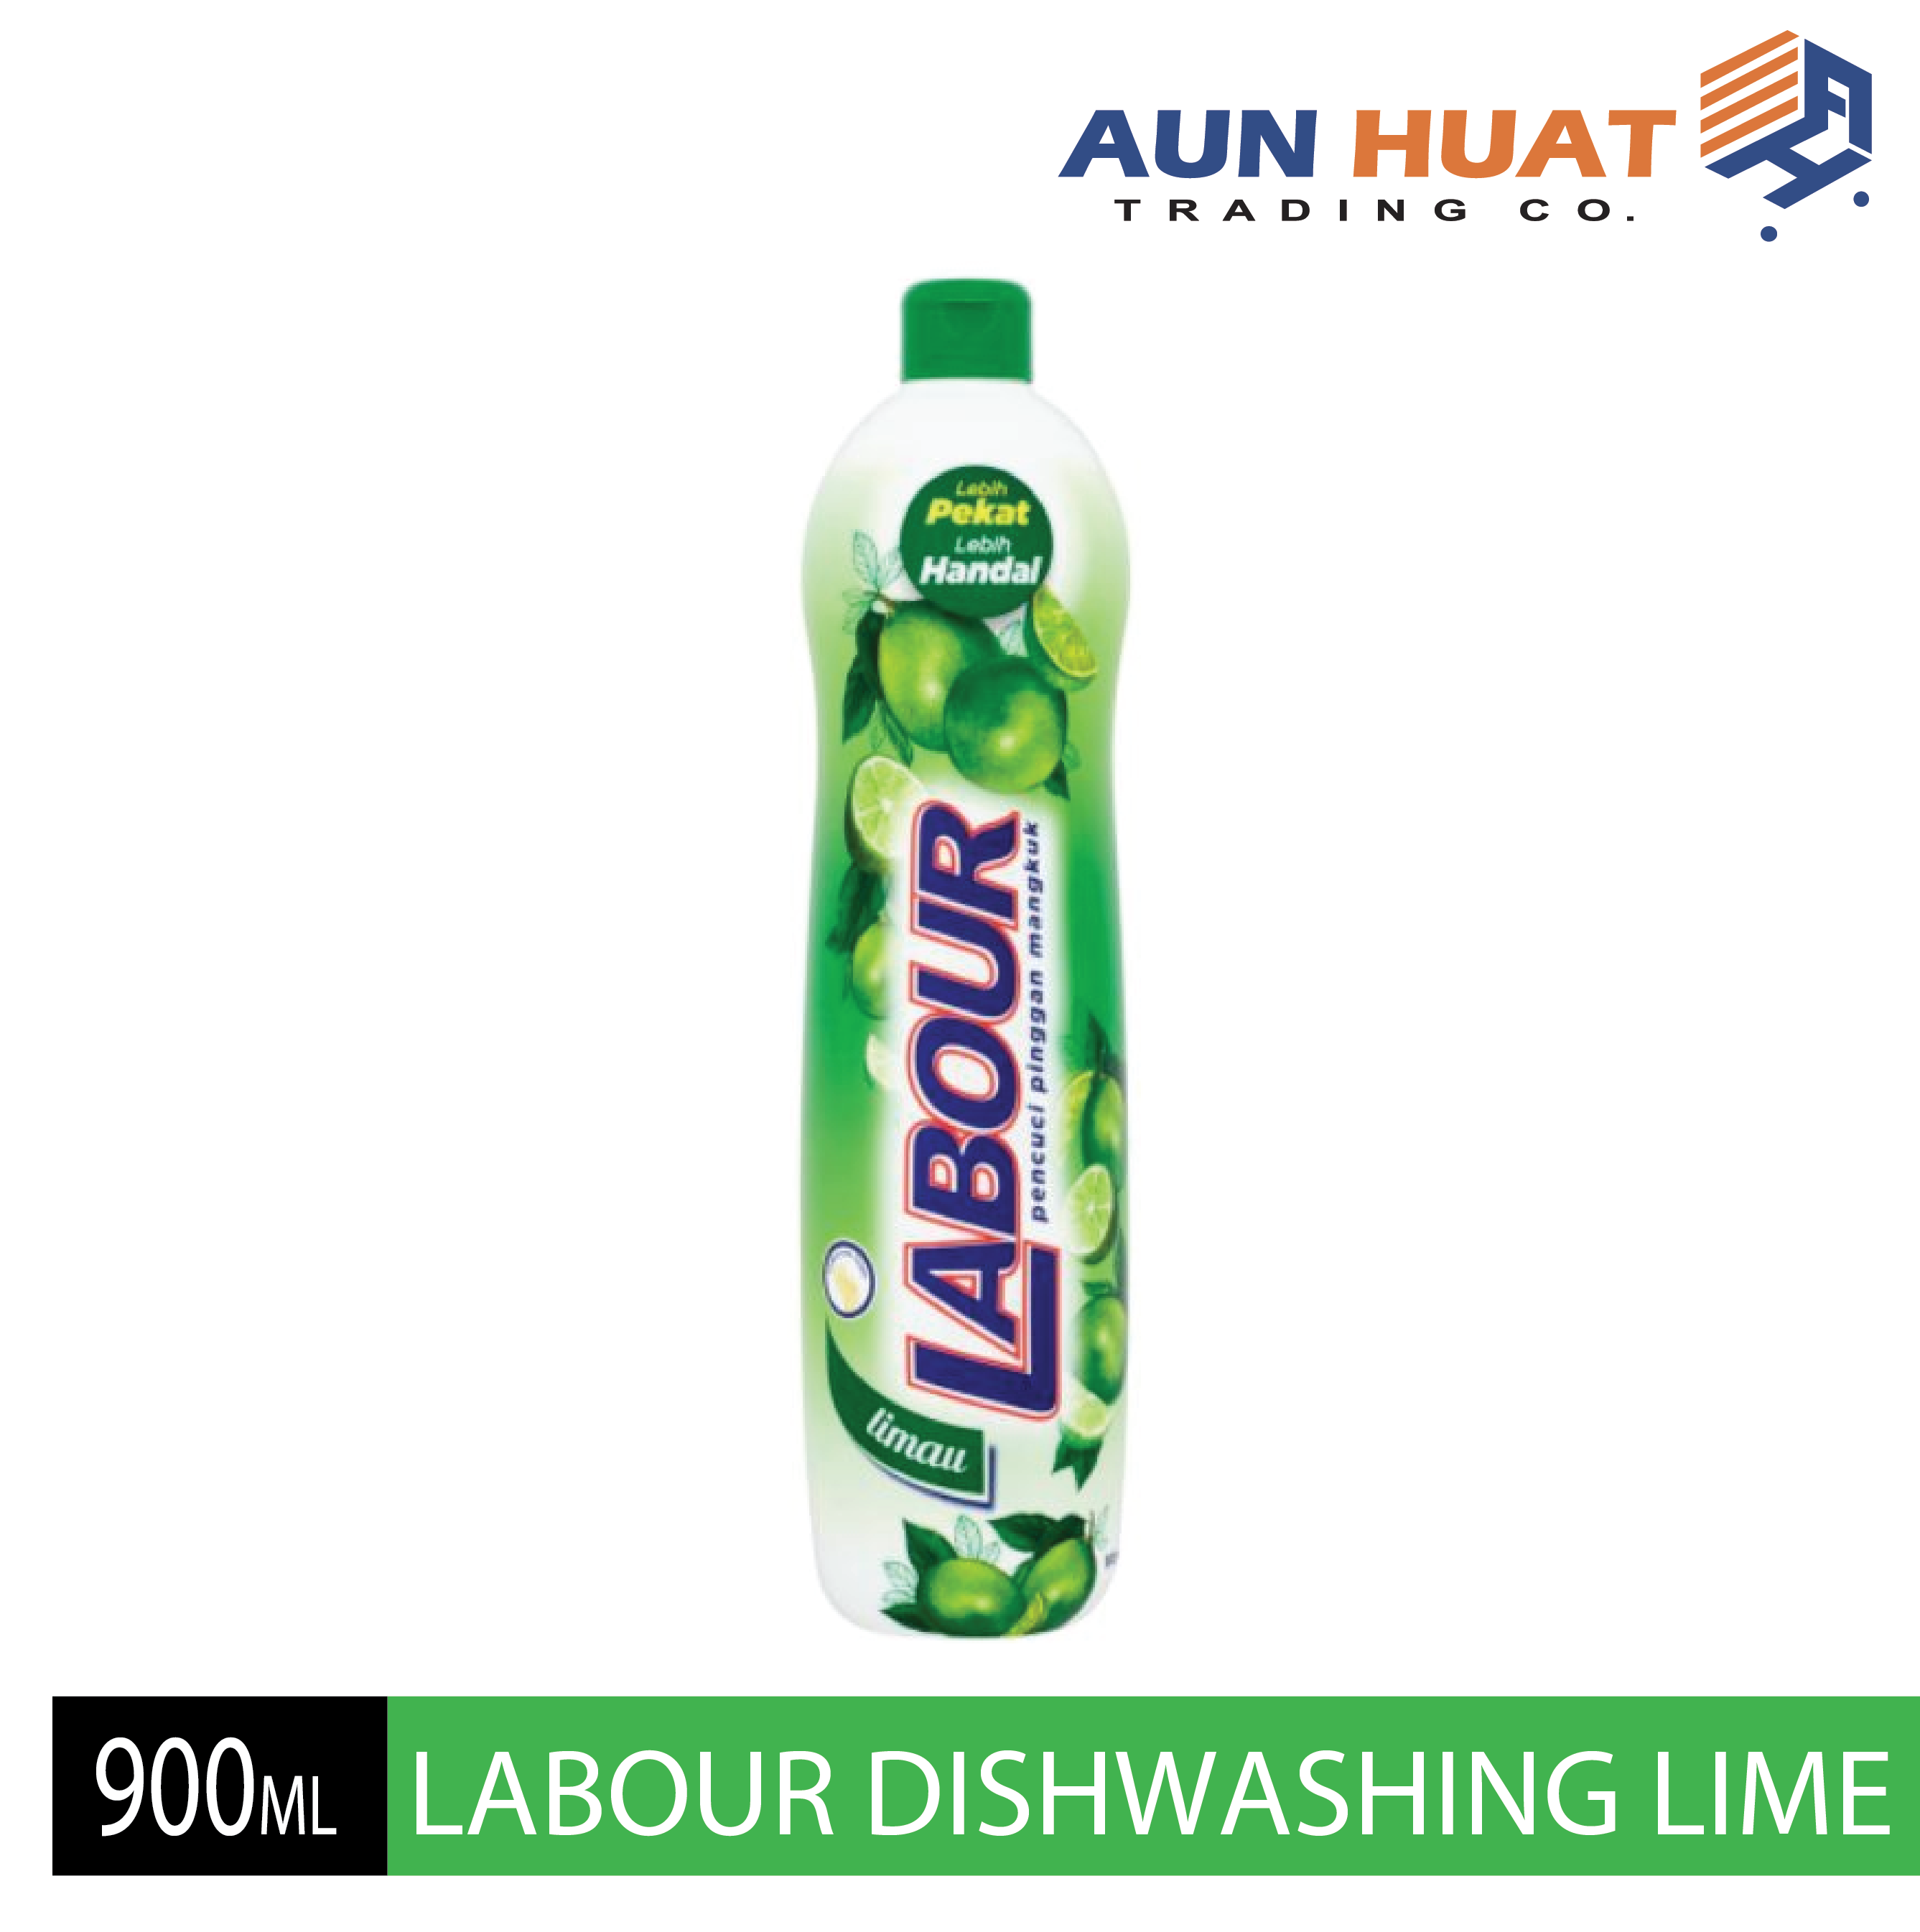 LABOUR DISHWASHING LIQUID LIME 900ML